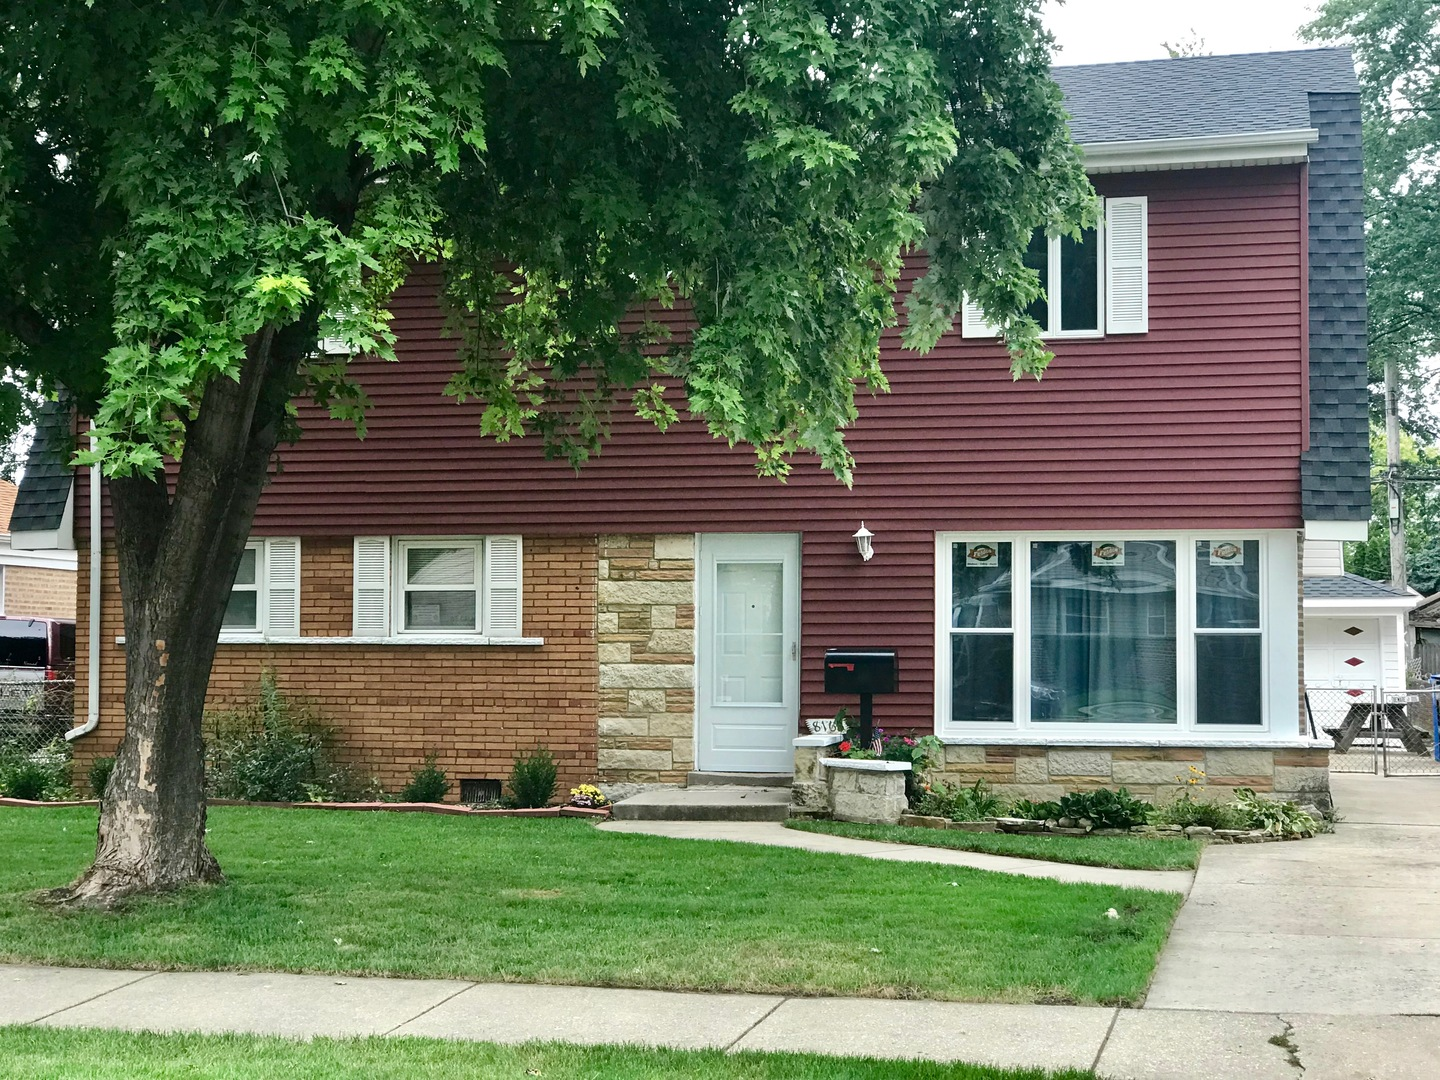 8169 SOUTH SCOTTSDALE AVENUE, CHICAGO, IL 60652